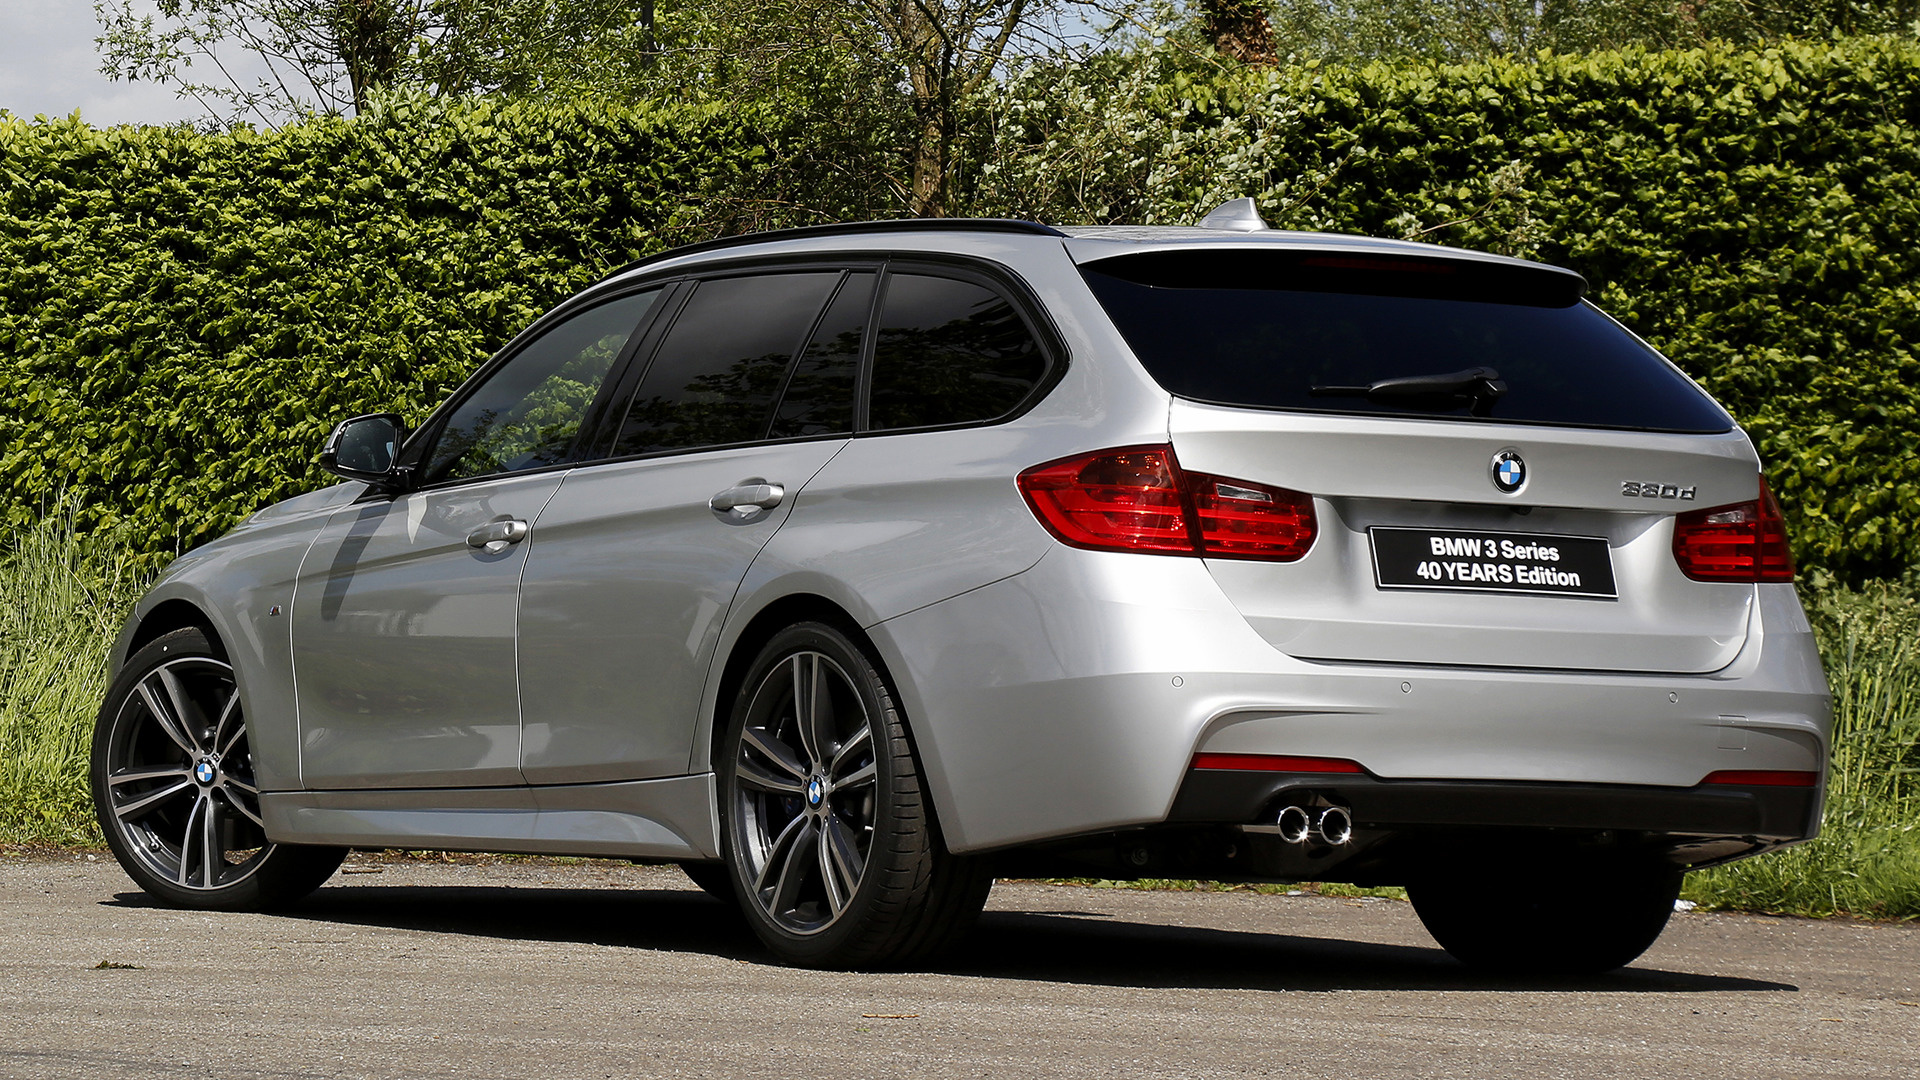 2015 BMW 3 Series Touring 40 Years Edition - Wallpapers ...